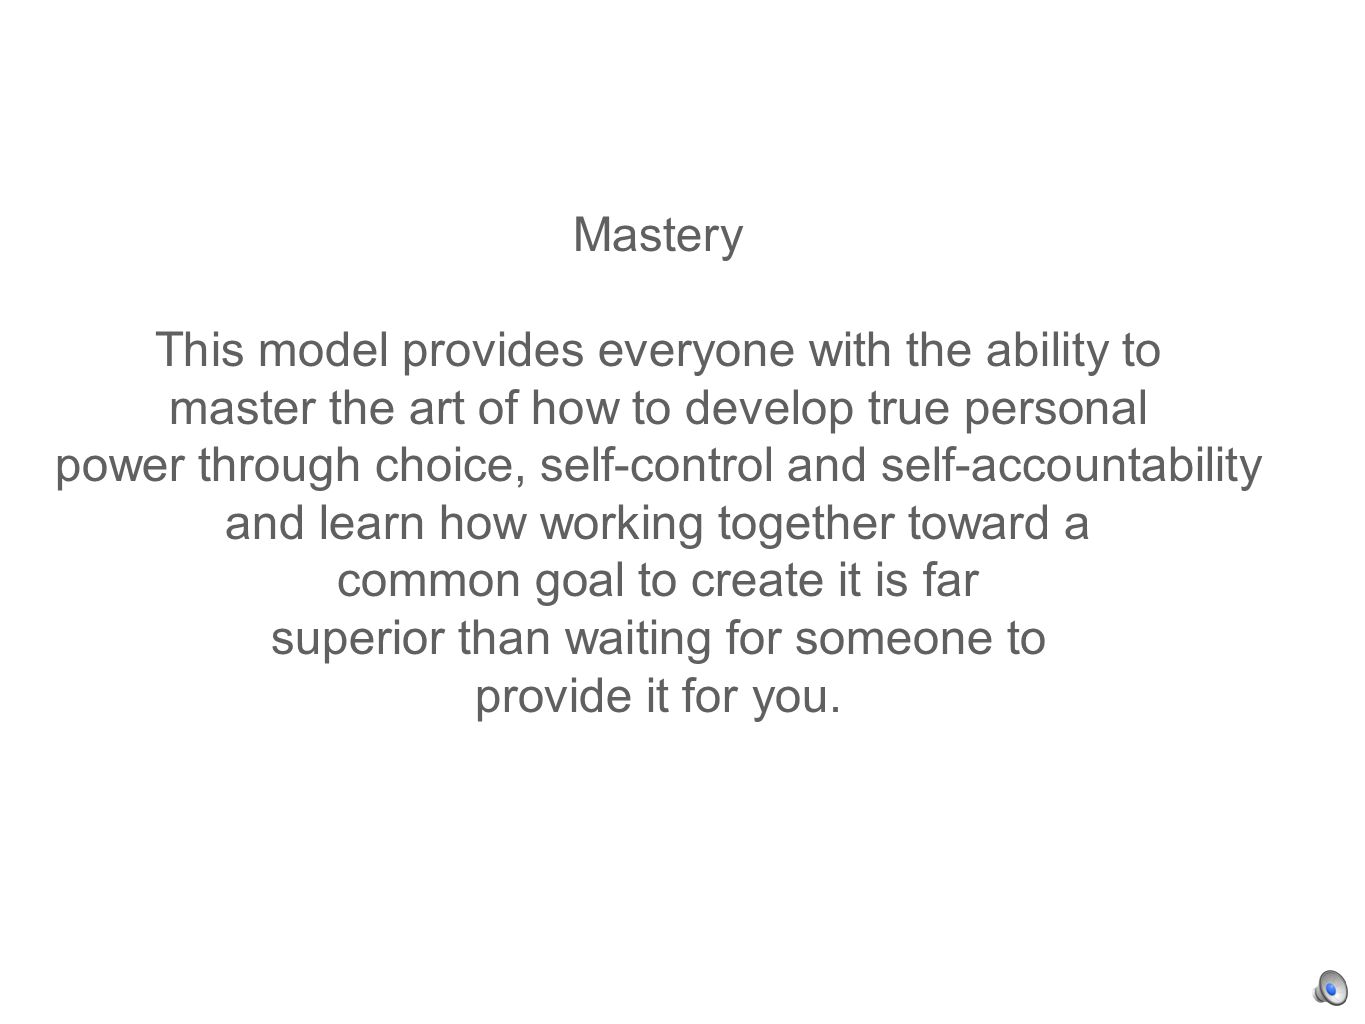 Mastery This model provides everyone with the ability to master the art of how to develop true personal power through choice, self-control and self-accountability and learn how working together toward a common goal to create it is far superior than waiting for someone to provide it for you.